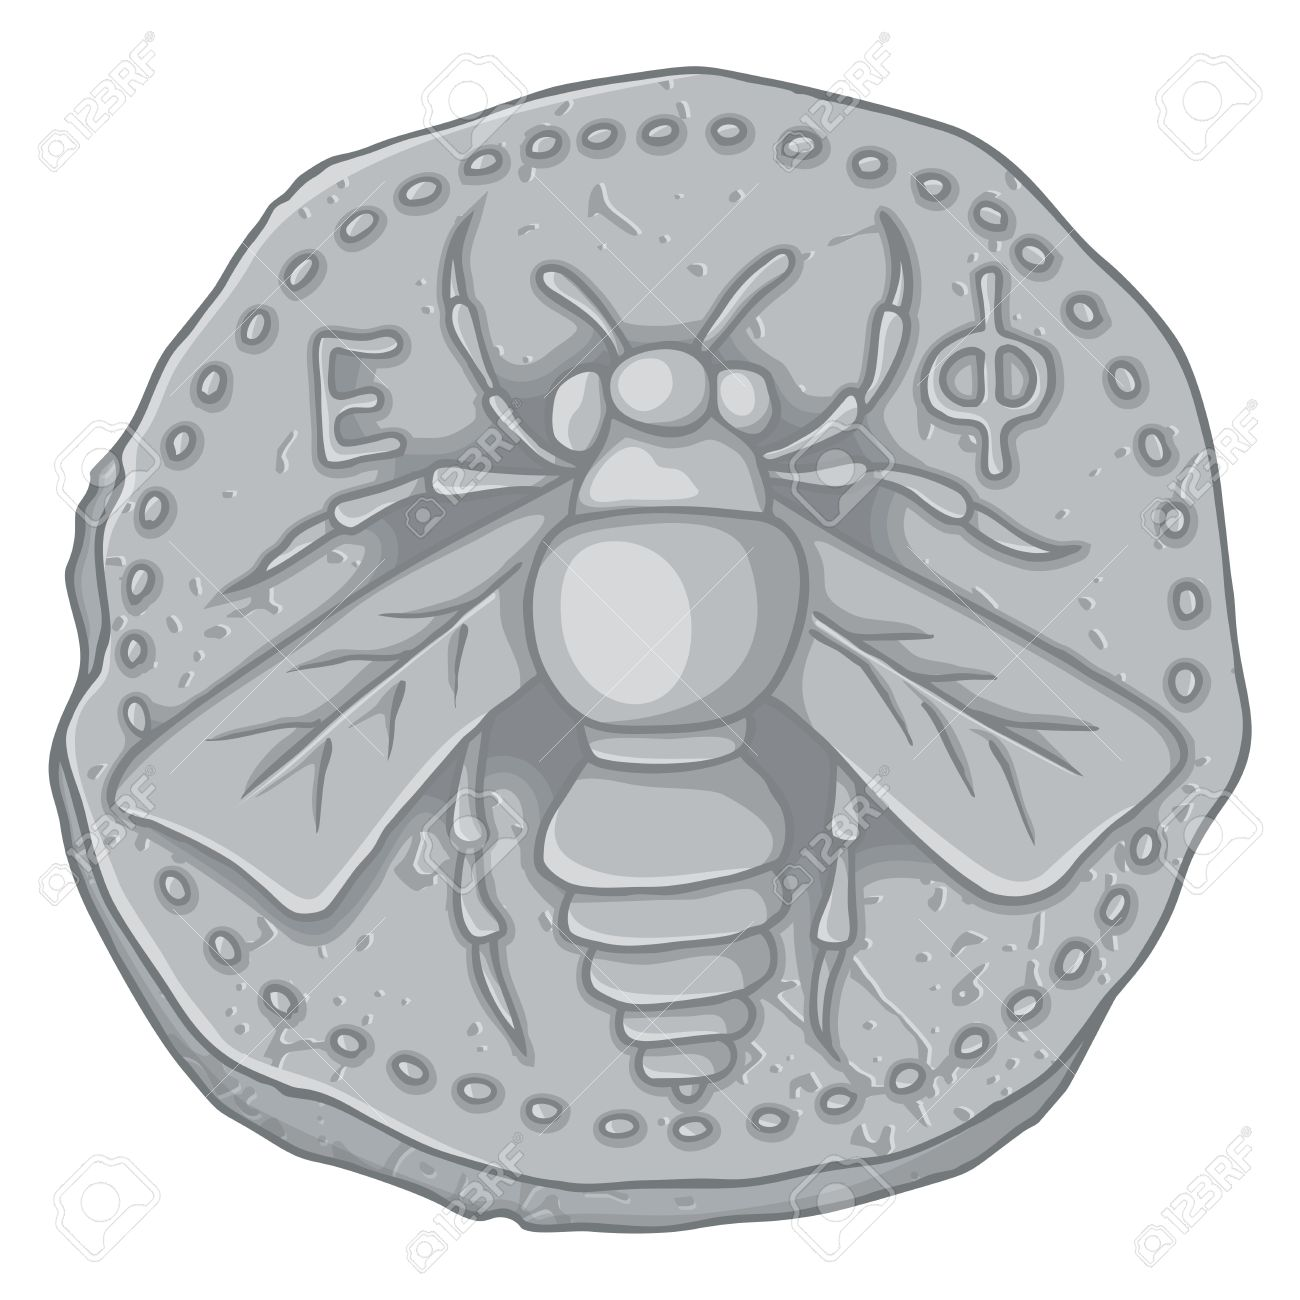 Ancient greek coin of ephesus ionia 400 bc with honey bee symbol ancient greek coin of ephesus ionia 400 bc with honey bee symbol of artemis goddess and biocorpaavc Choice Image